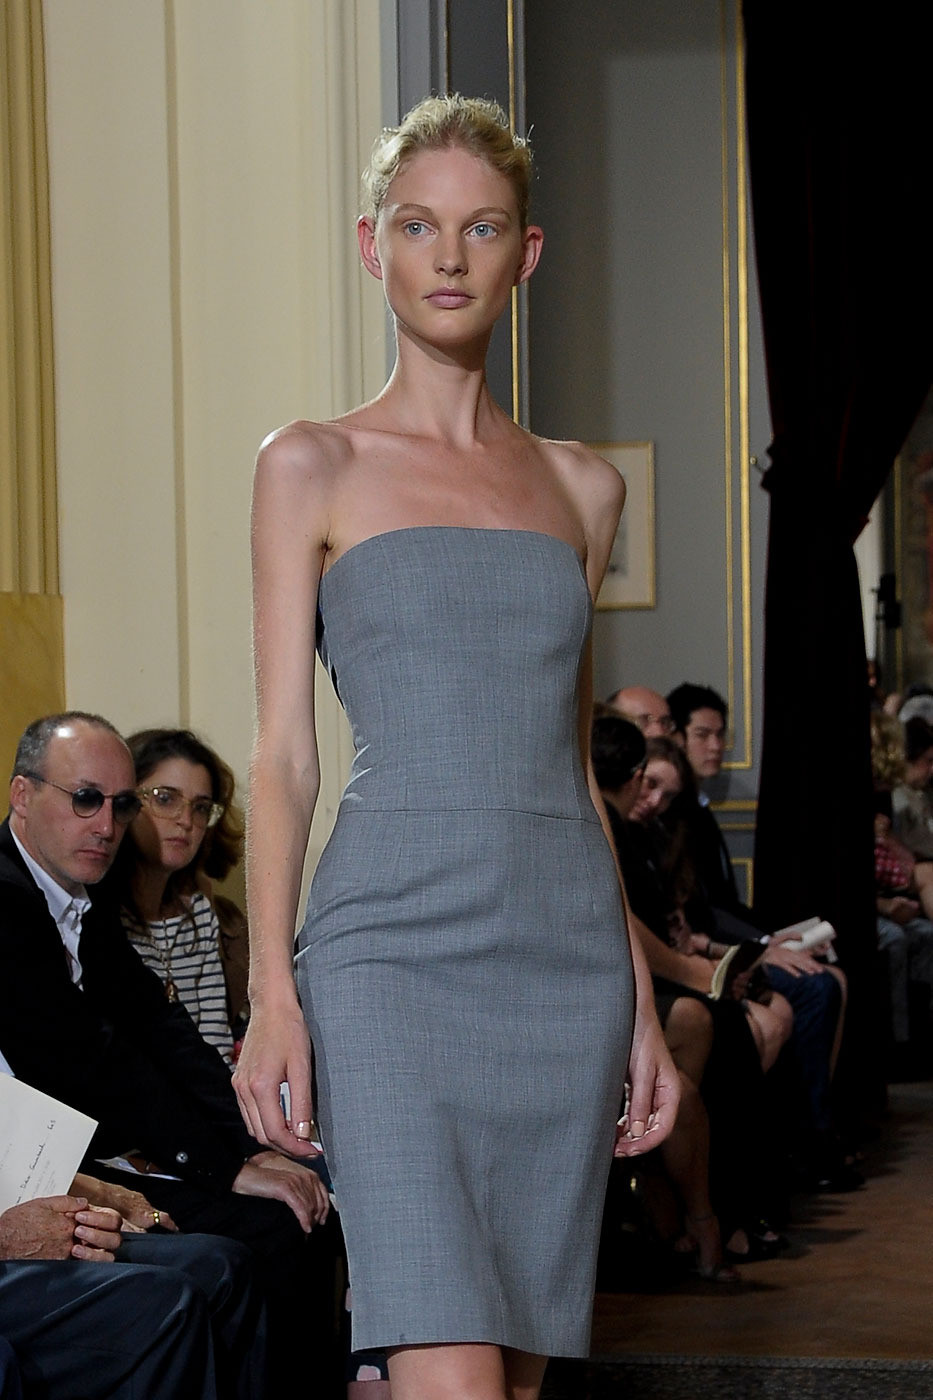 Bouchra Jarrar Haute Couture Fall/Winter 2011 / Lanvin new fashion designer via www.fashionedbylove.co.uk